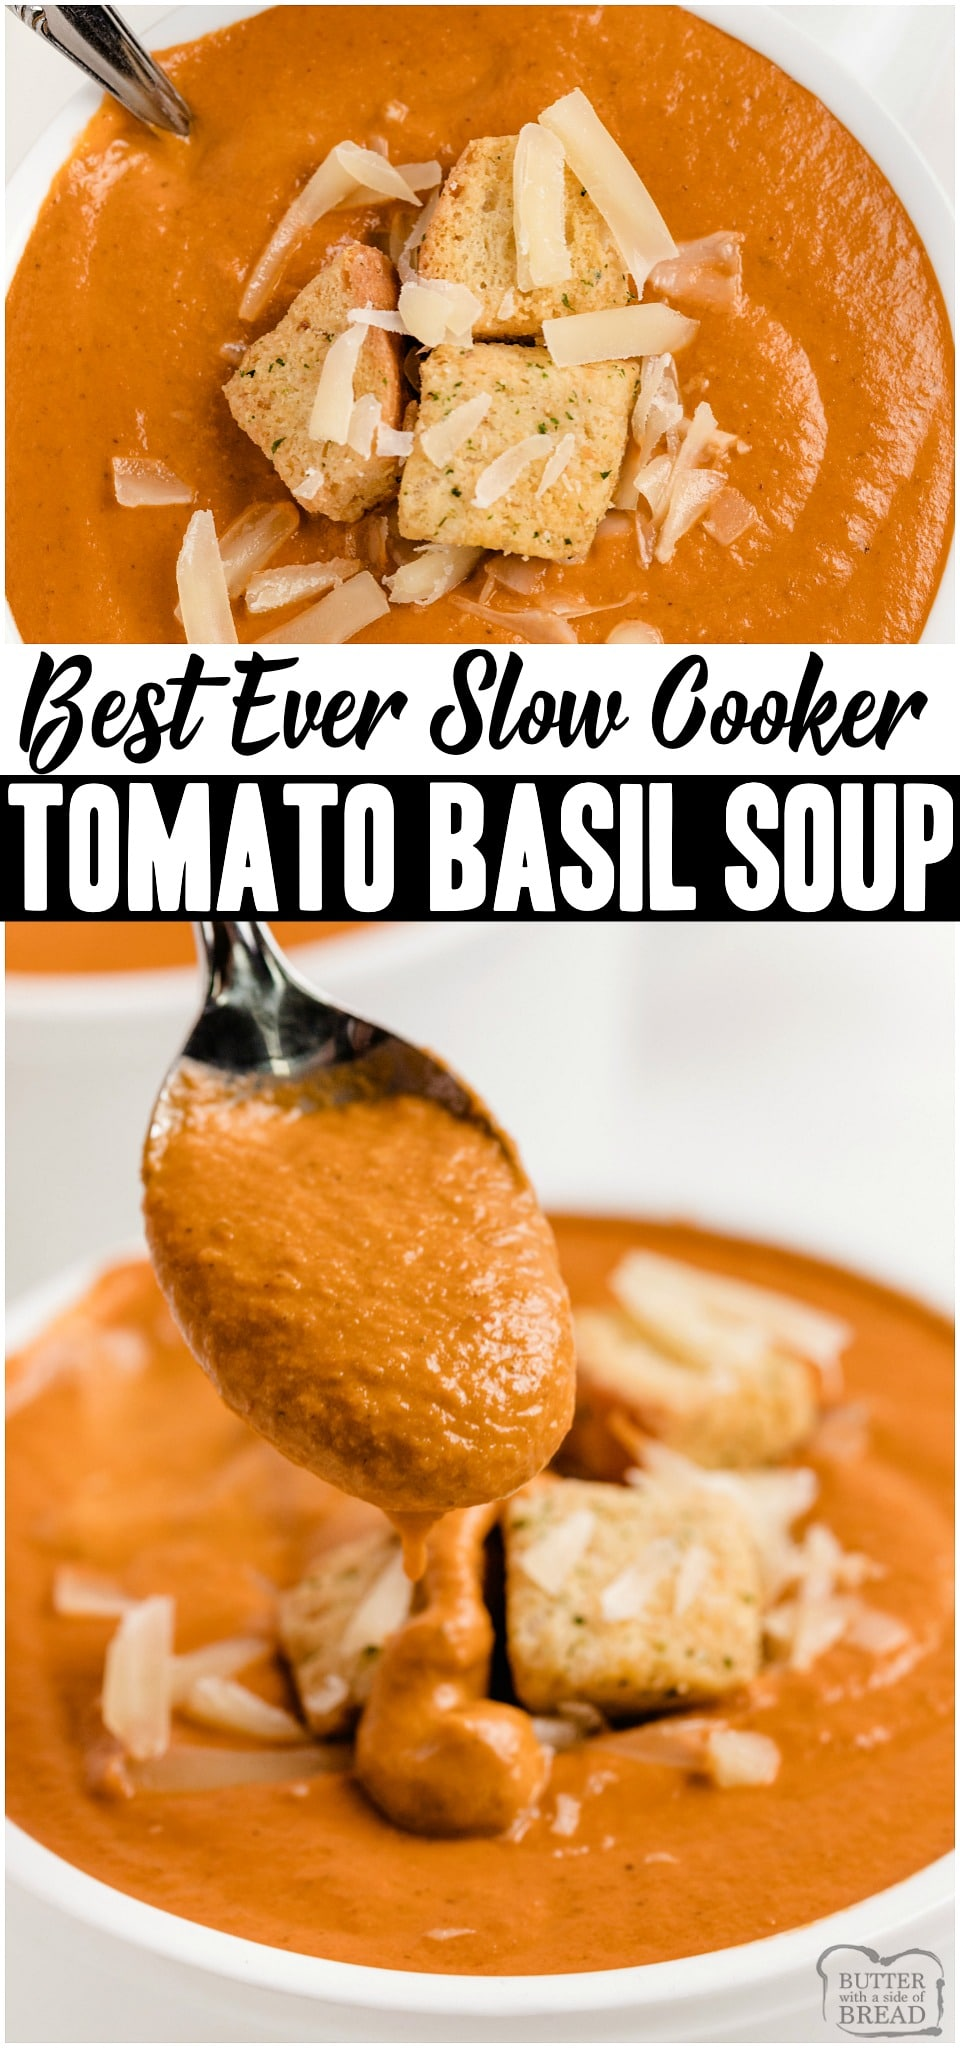 Tomato Basil Soup made with ripe tomatoes & pesto sauce blended until smooth & creamy & served topped with cheese & croutons! It's just like the Tomato Basil Soup recipe served at Cafe Zupas! #tomato #soup #tomatobasil #CafeZupas #souprecipe from BUTTER WITH A SIDE OF BREAD